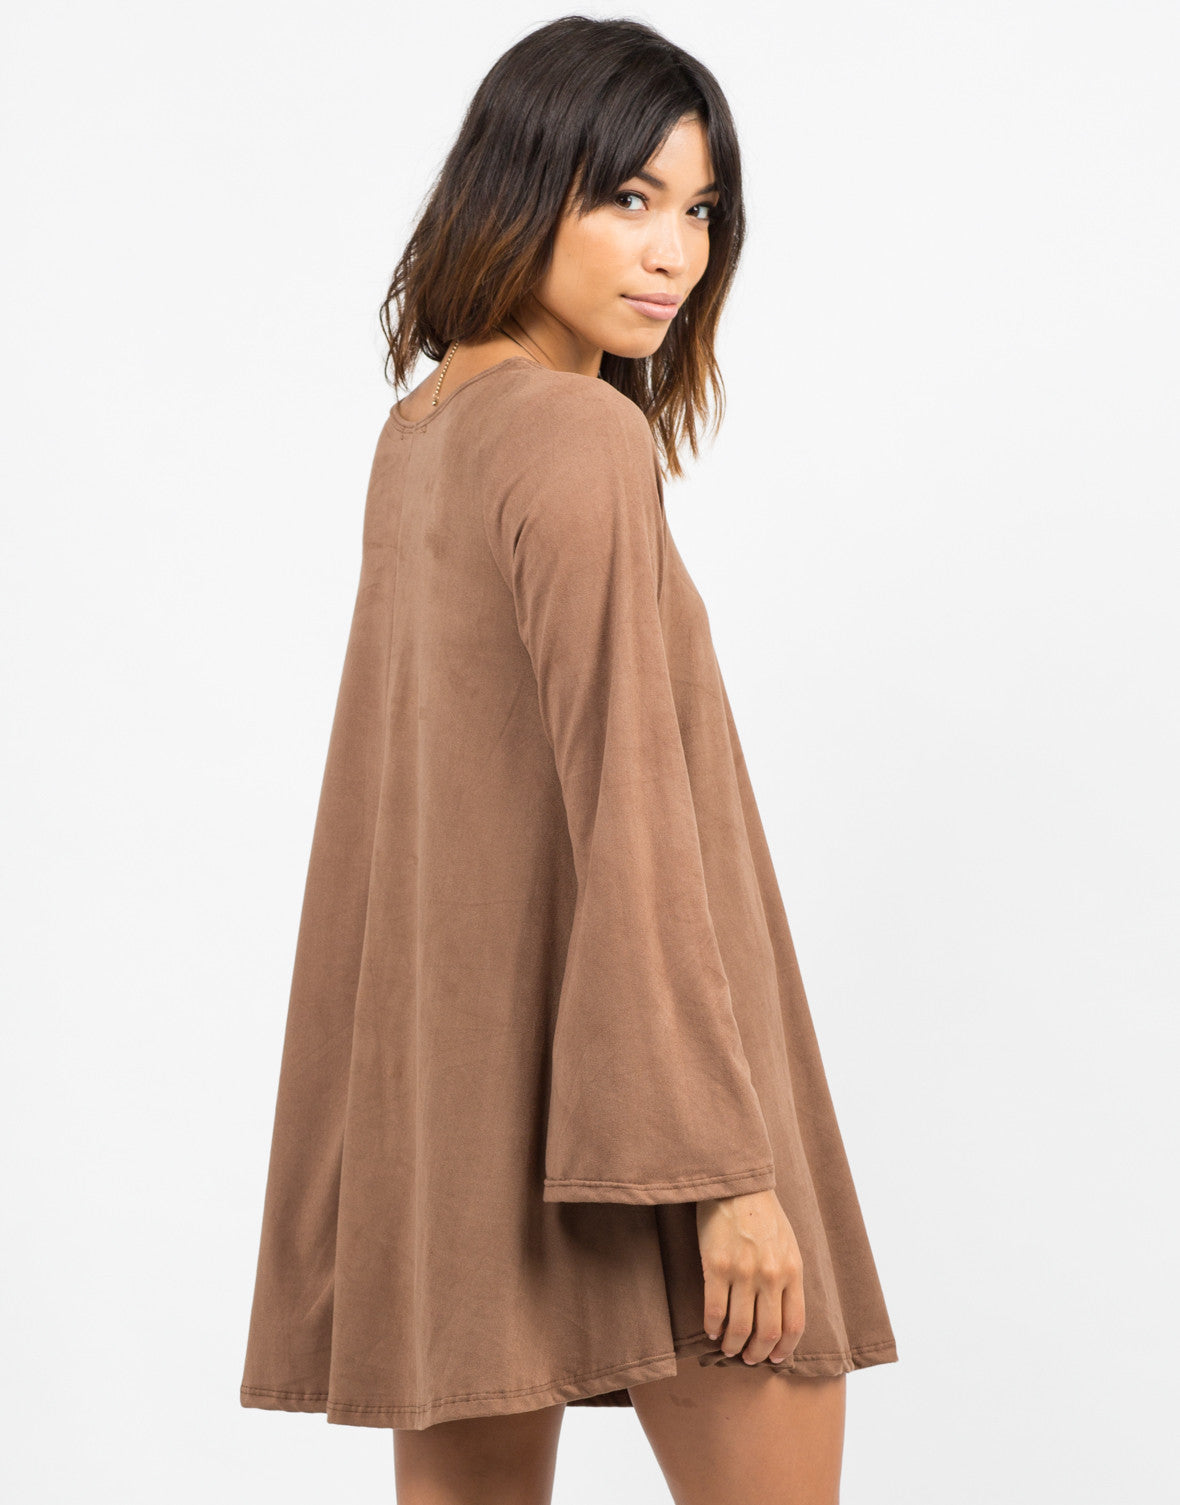 Back View of Bell Sleeve Suede Dress